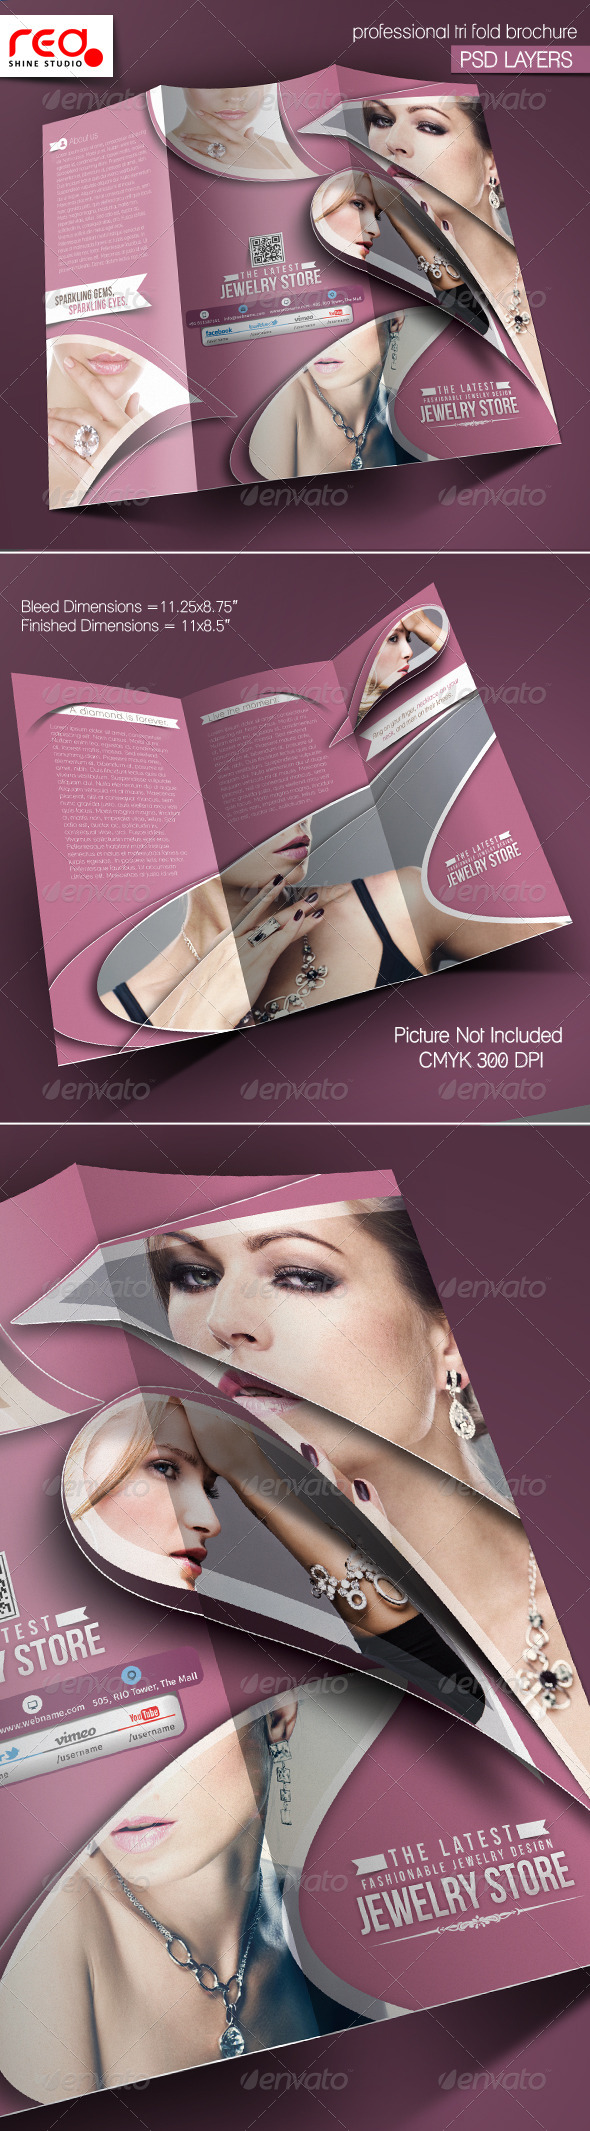 Jewelry Shop Trifold Brochure Template - 2 - Catalogs Brochures